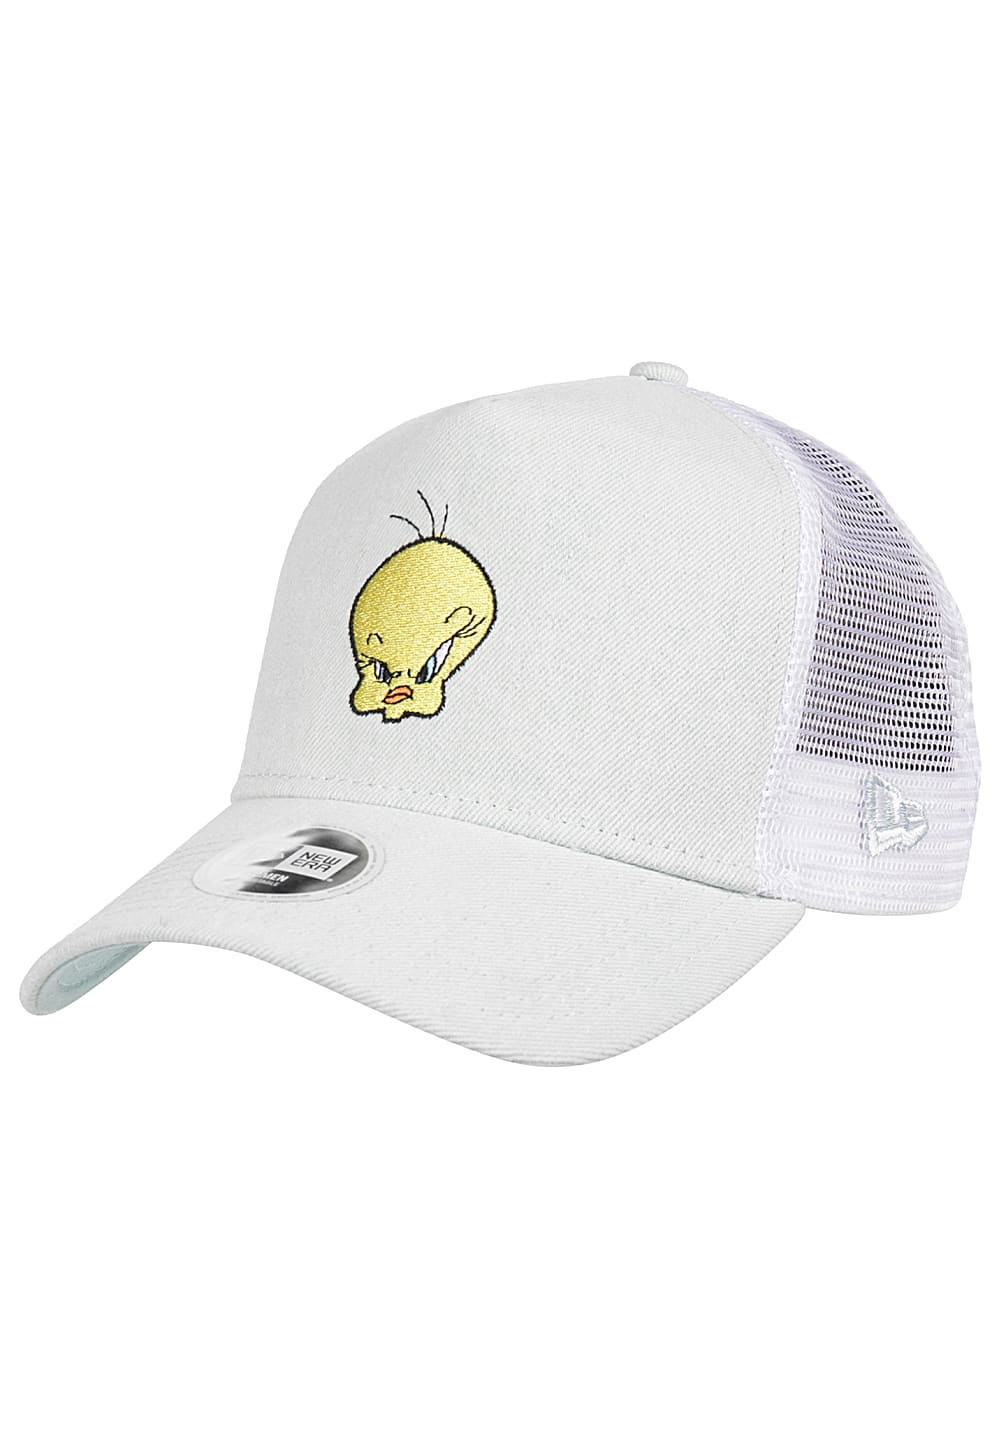 new era tweety bird trucker cap f r damen bla lightning. Black Bedroom Furniture Sets. Home Design Ideas